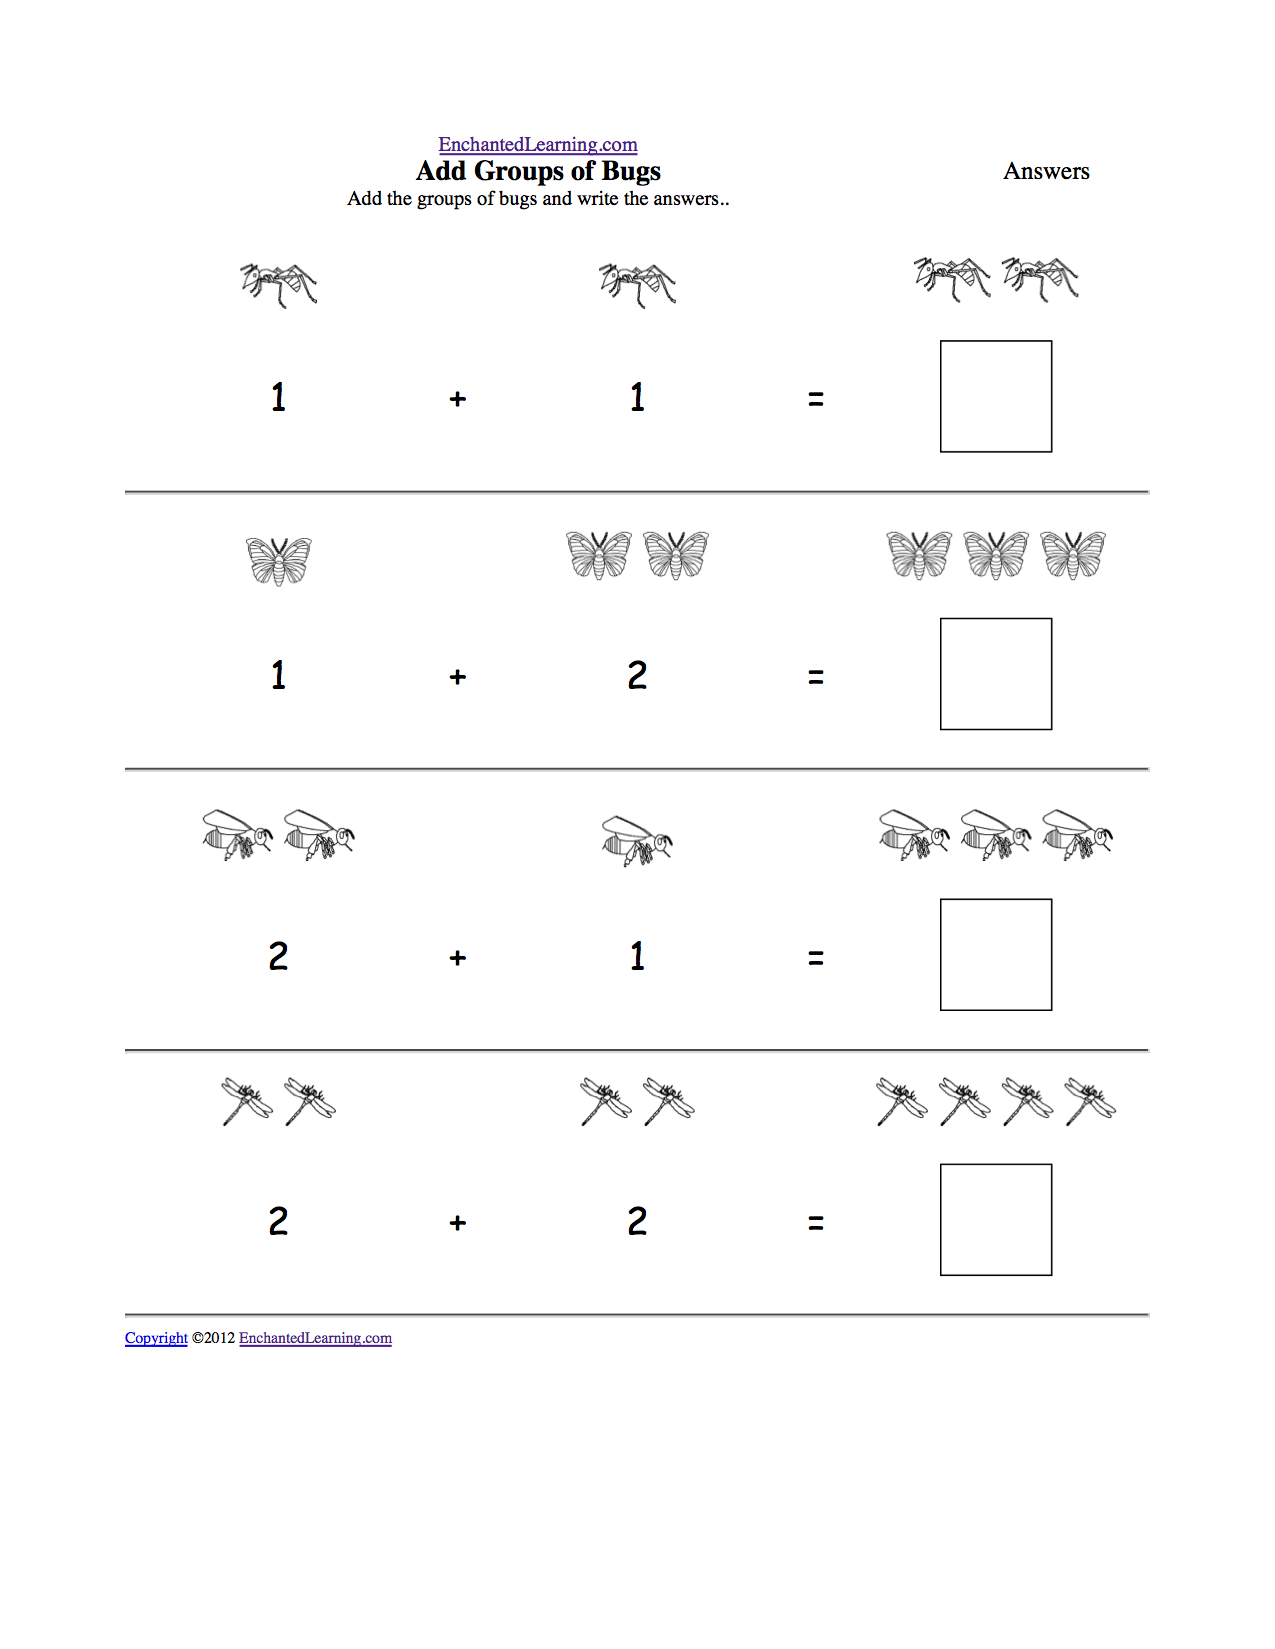 math worksheet : animal math worksheets at enchantedlearning  : Maths Worksheets For 10 Year Olds